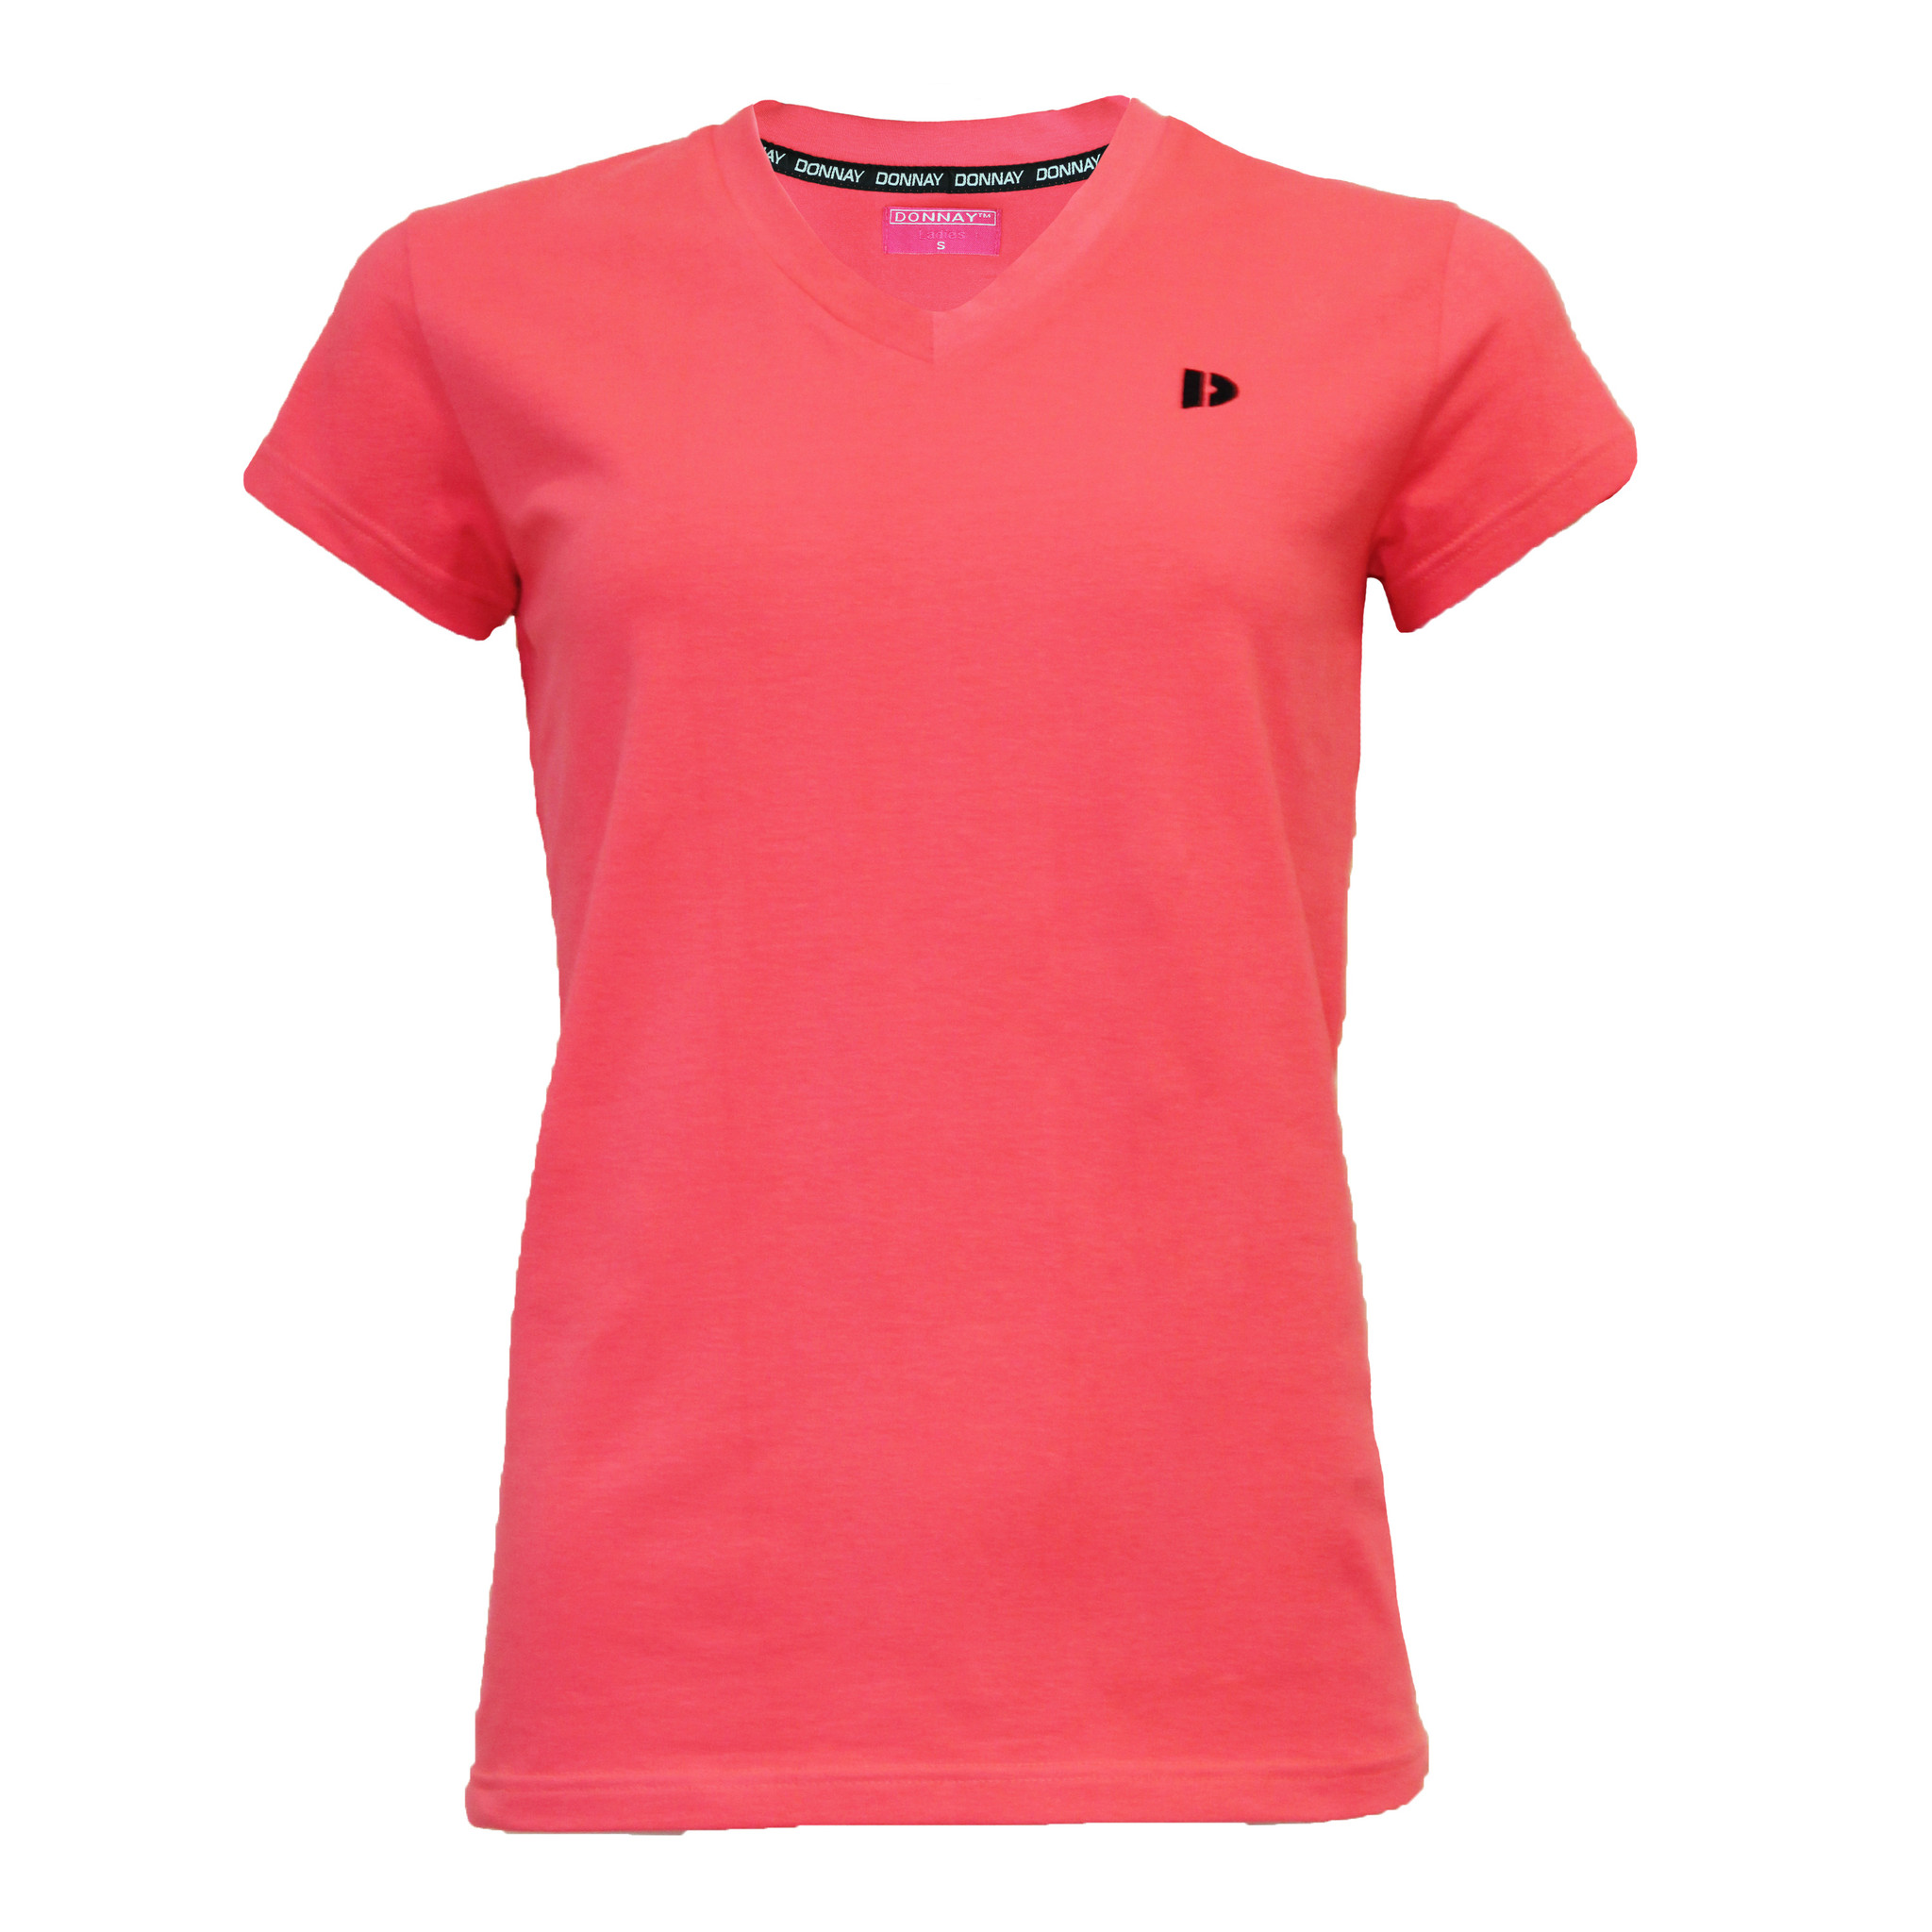 Donnay Donnay Dames - T-shirt Lois - Koraal Rood/roze